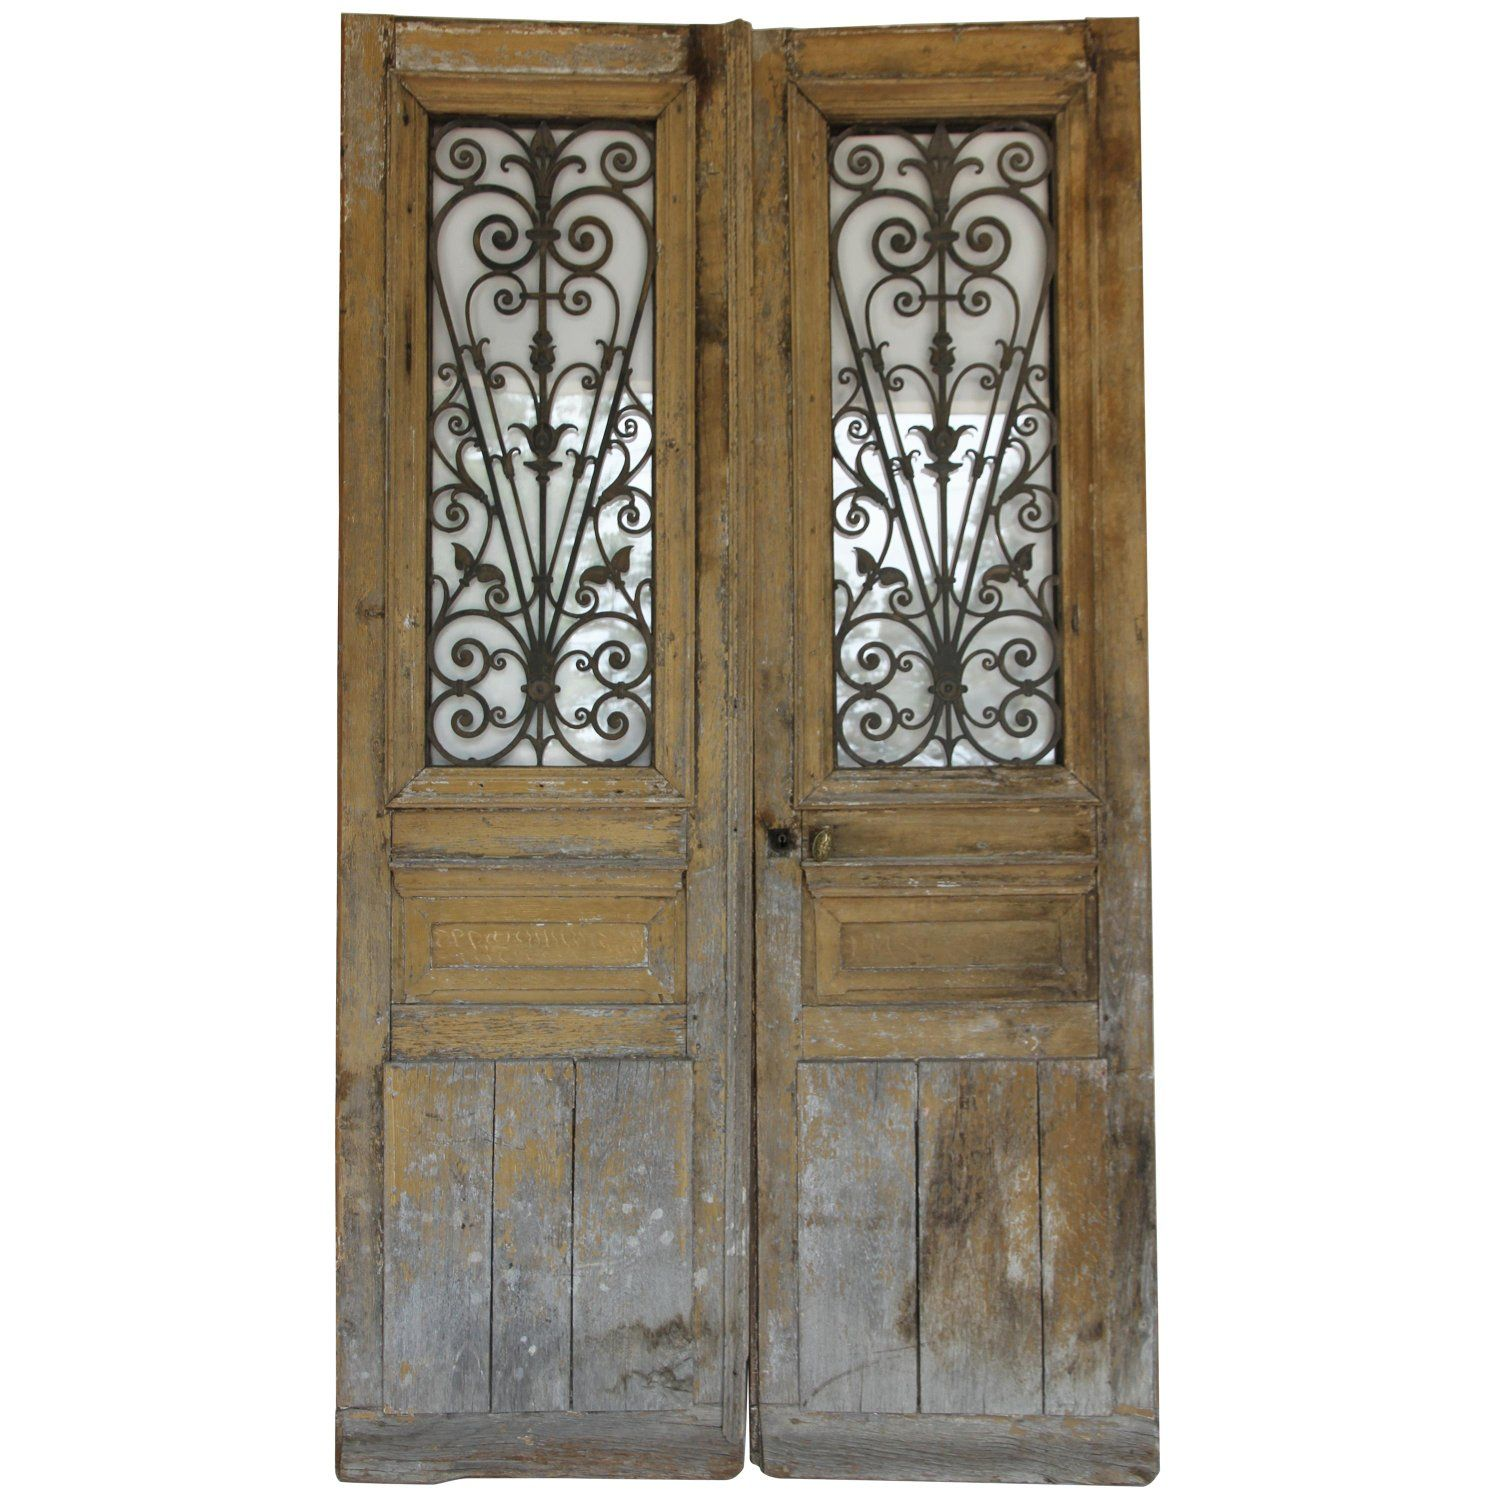 Antique French Doors with Iron and Glass Panels - Antique French Doors With Iron And Glass Panels My 1stdibs